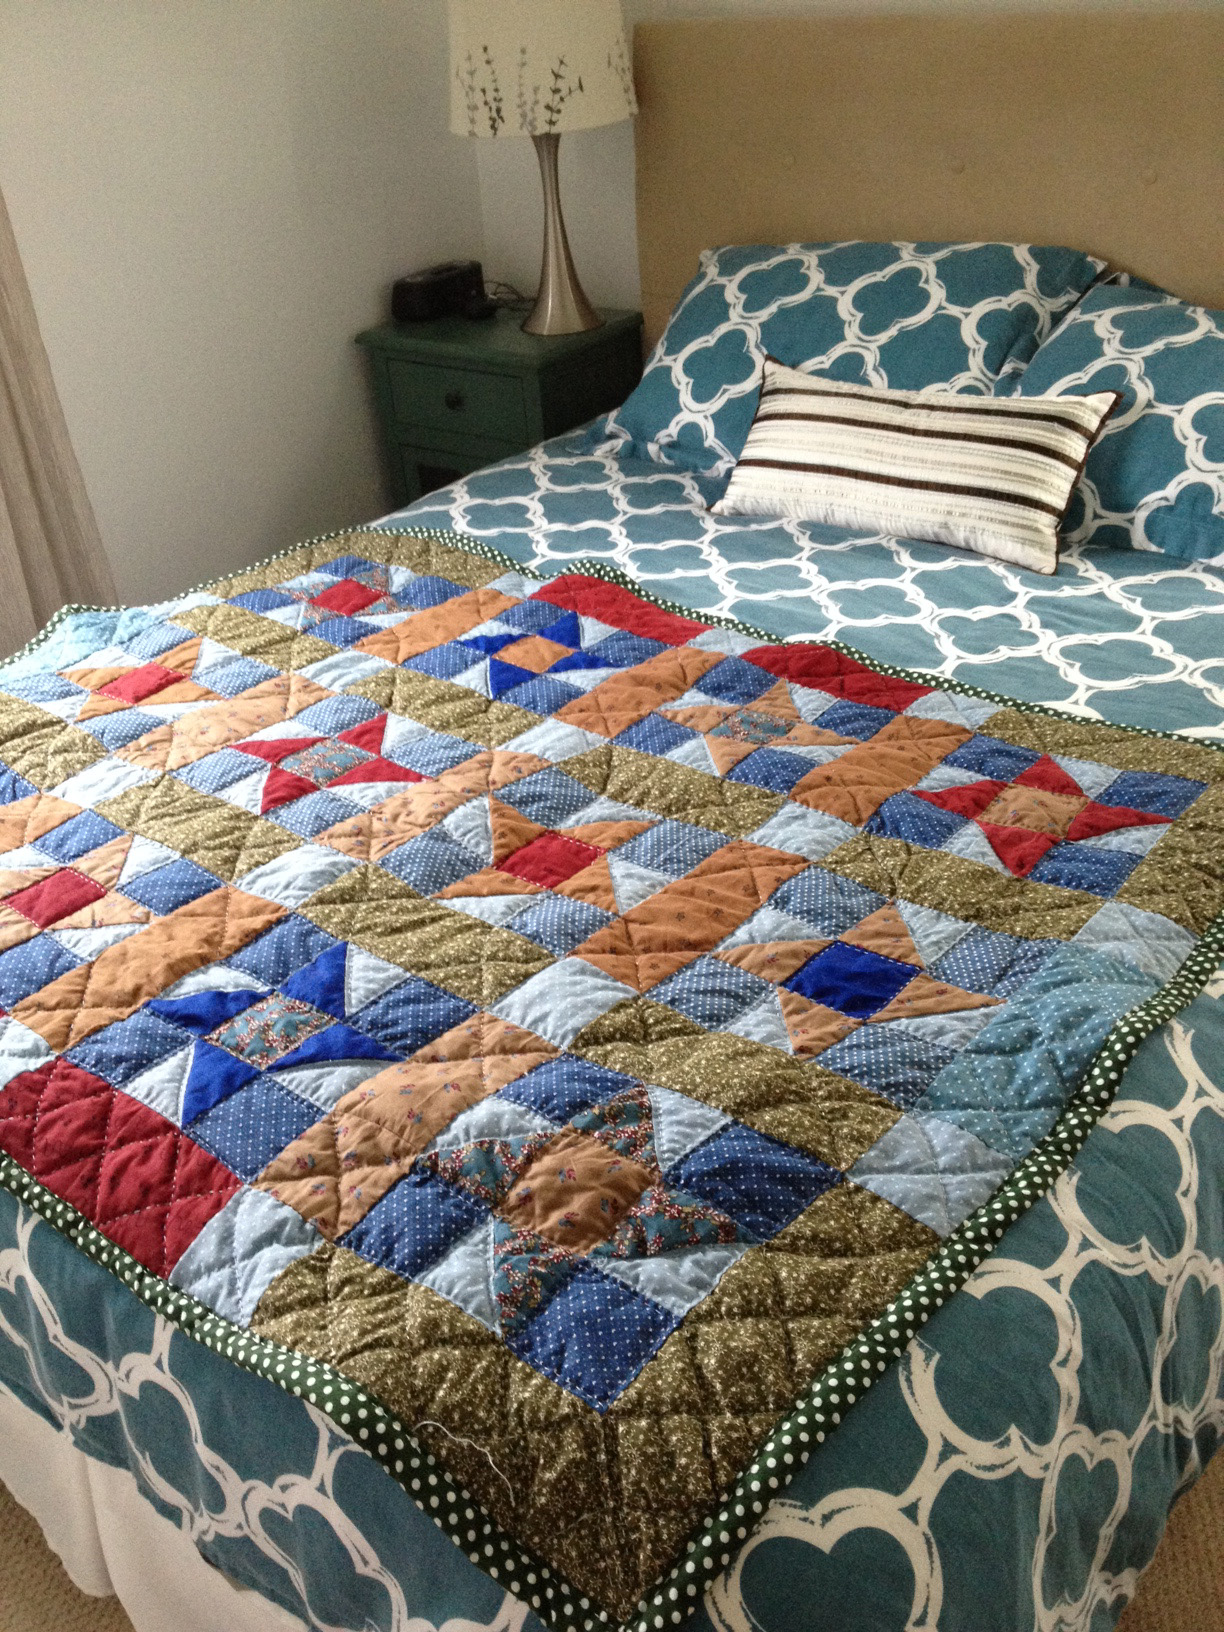 Although, truthfully I did make a log cabin quilt in 2013. You can see it in the  portfolio section .